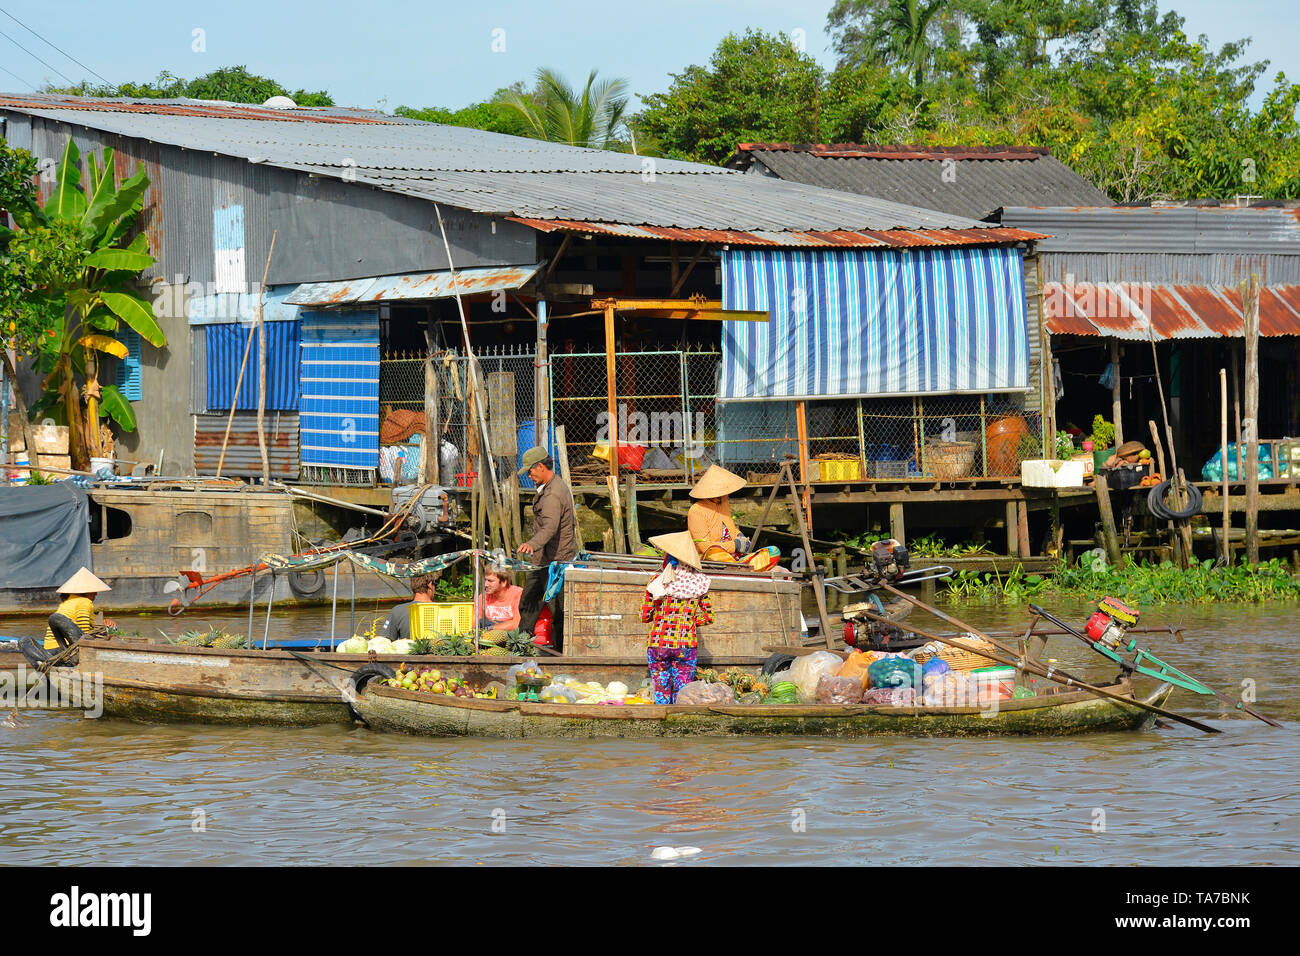 Phong Dien, Vietnam - December 31st 2017. Local vendors on the river at the Phong Dien Floating Market near Can Tho in the Mekong Delta - Stock Image